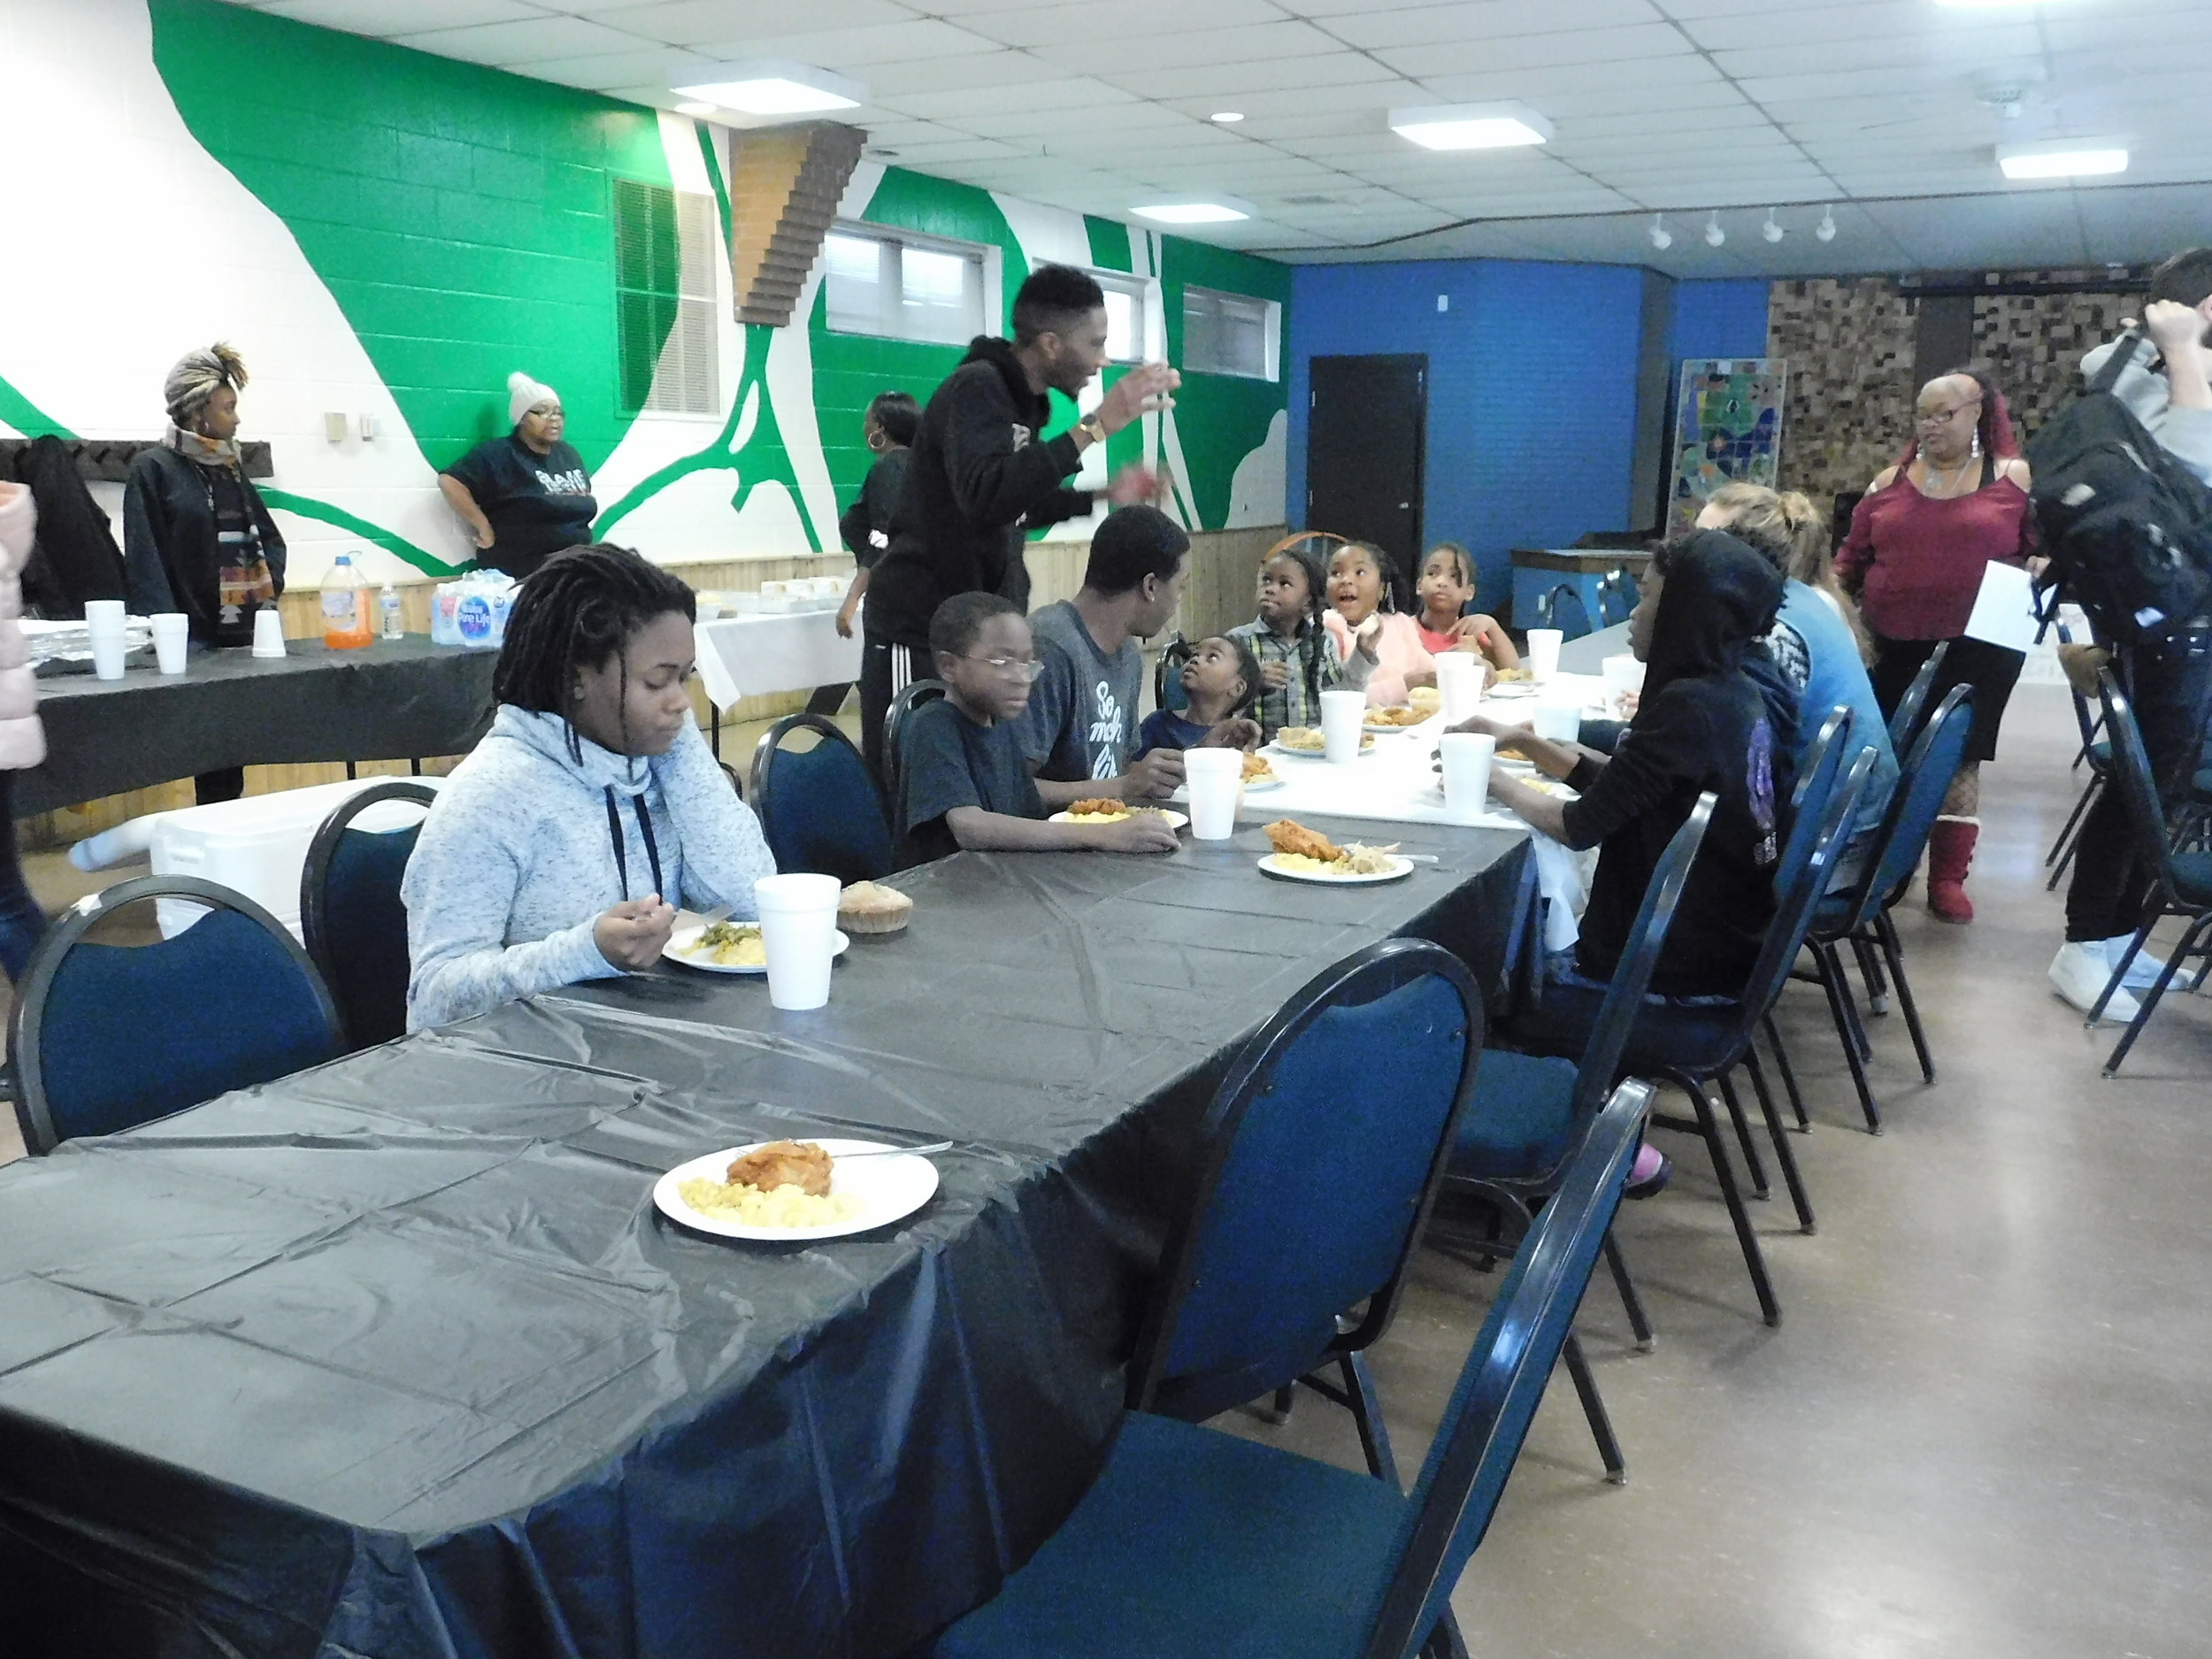 Everyone was welcomed to enjoy in the food provided by Antonio Holmes. (Picture by Nyesha Stone)